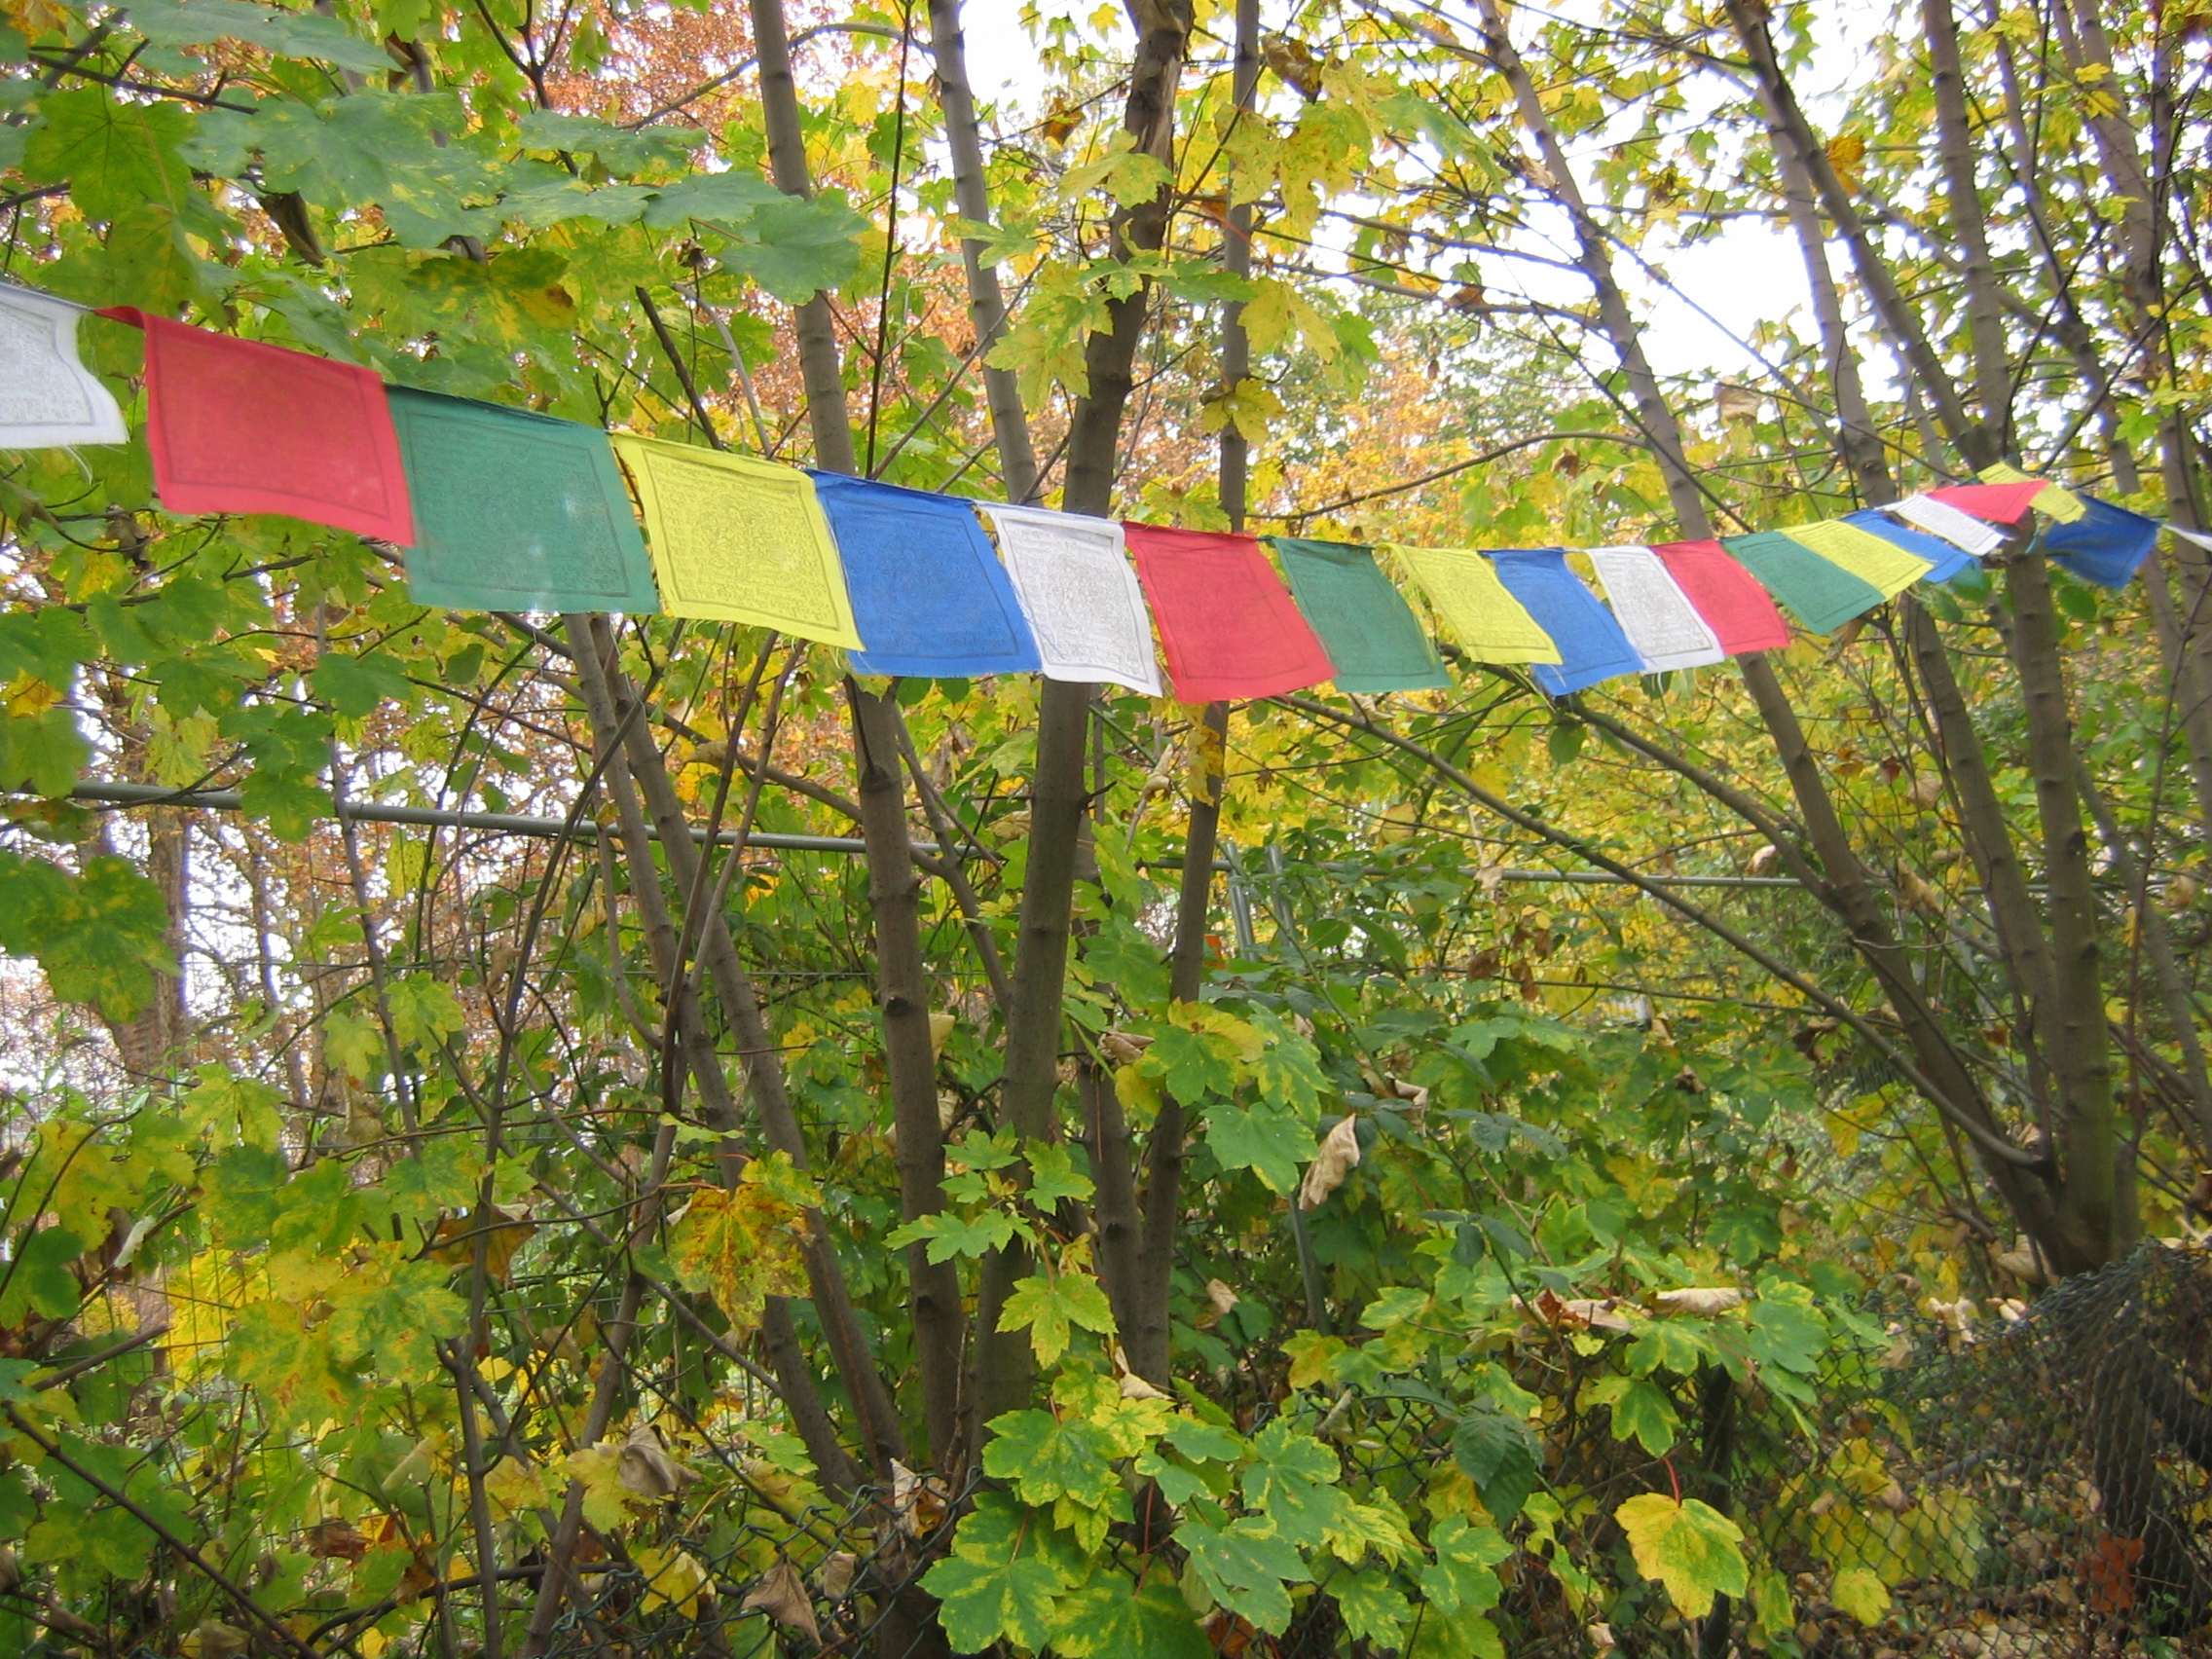 Description Tibetan prayer flags samye dzong Londonjpg BOd7d5cw